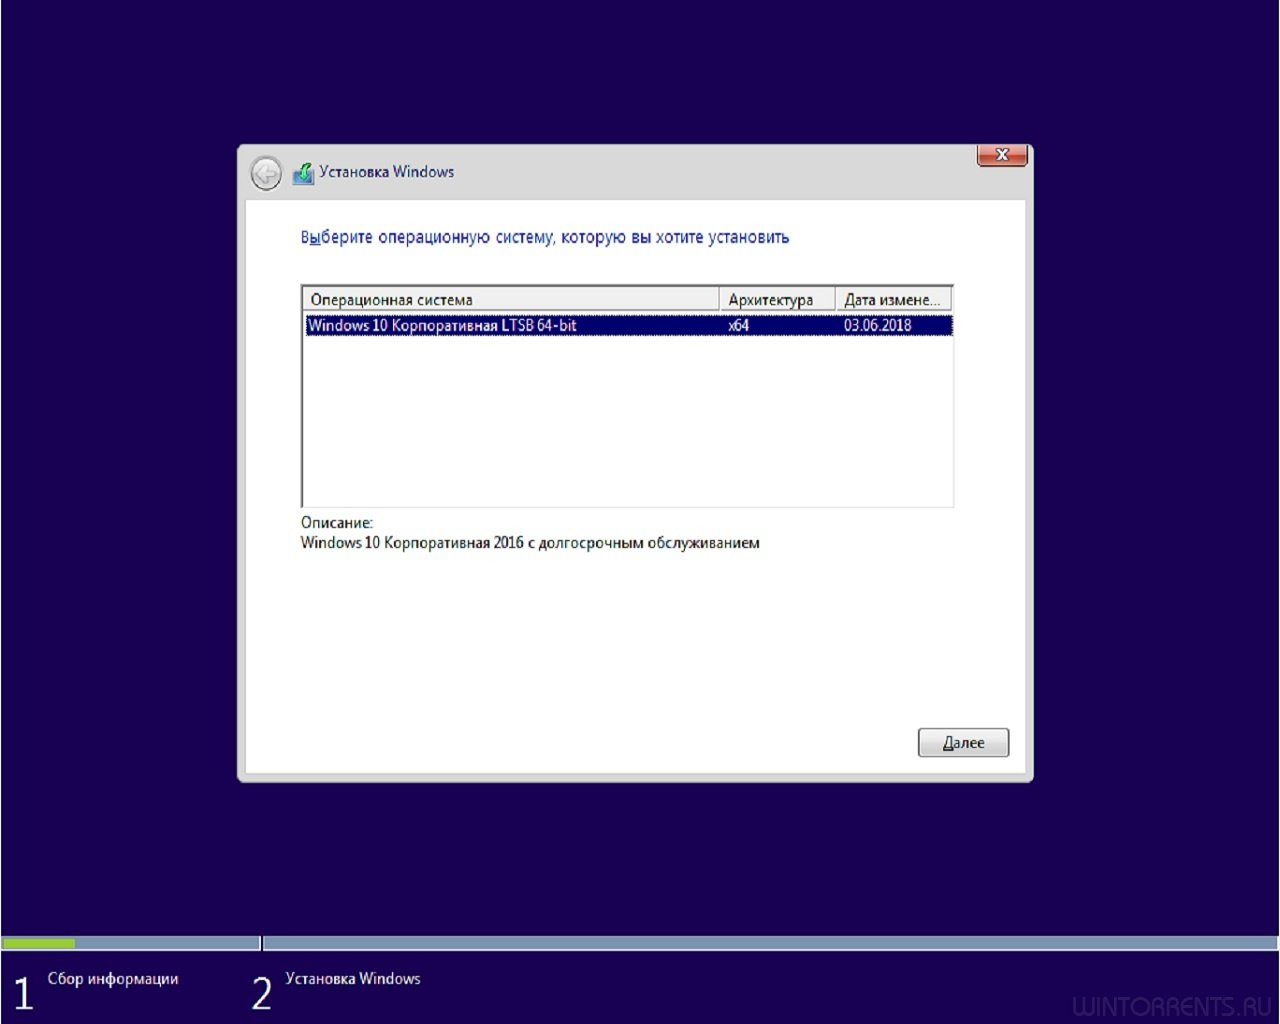 os windows 8rx64 bit update professional 2012г